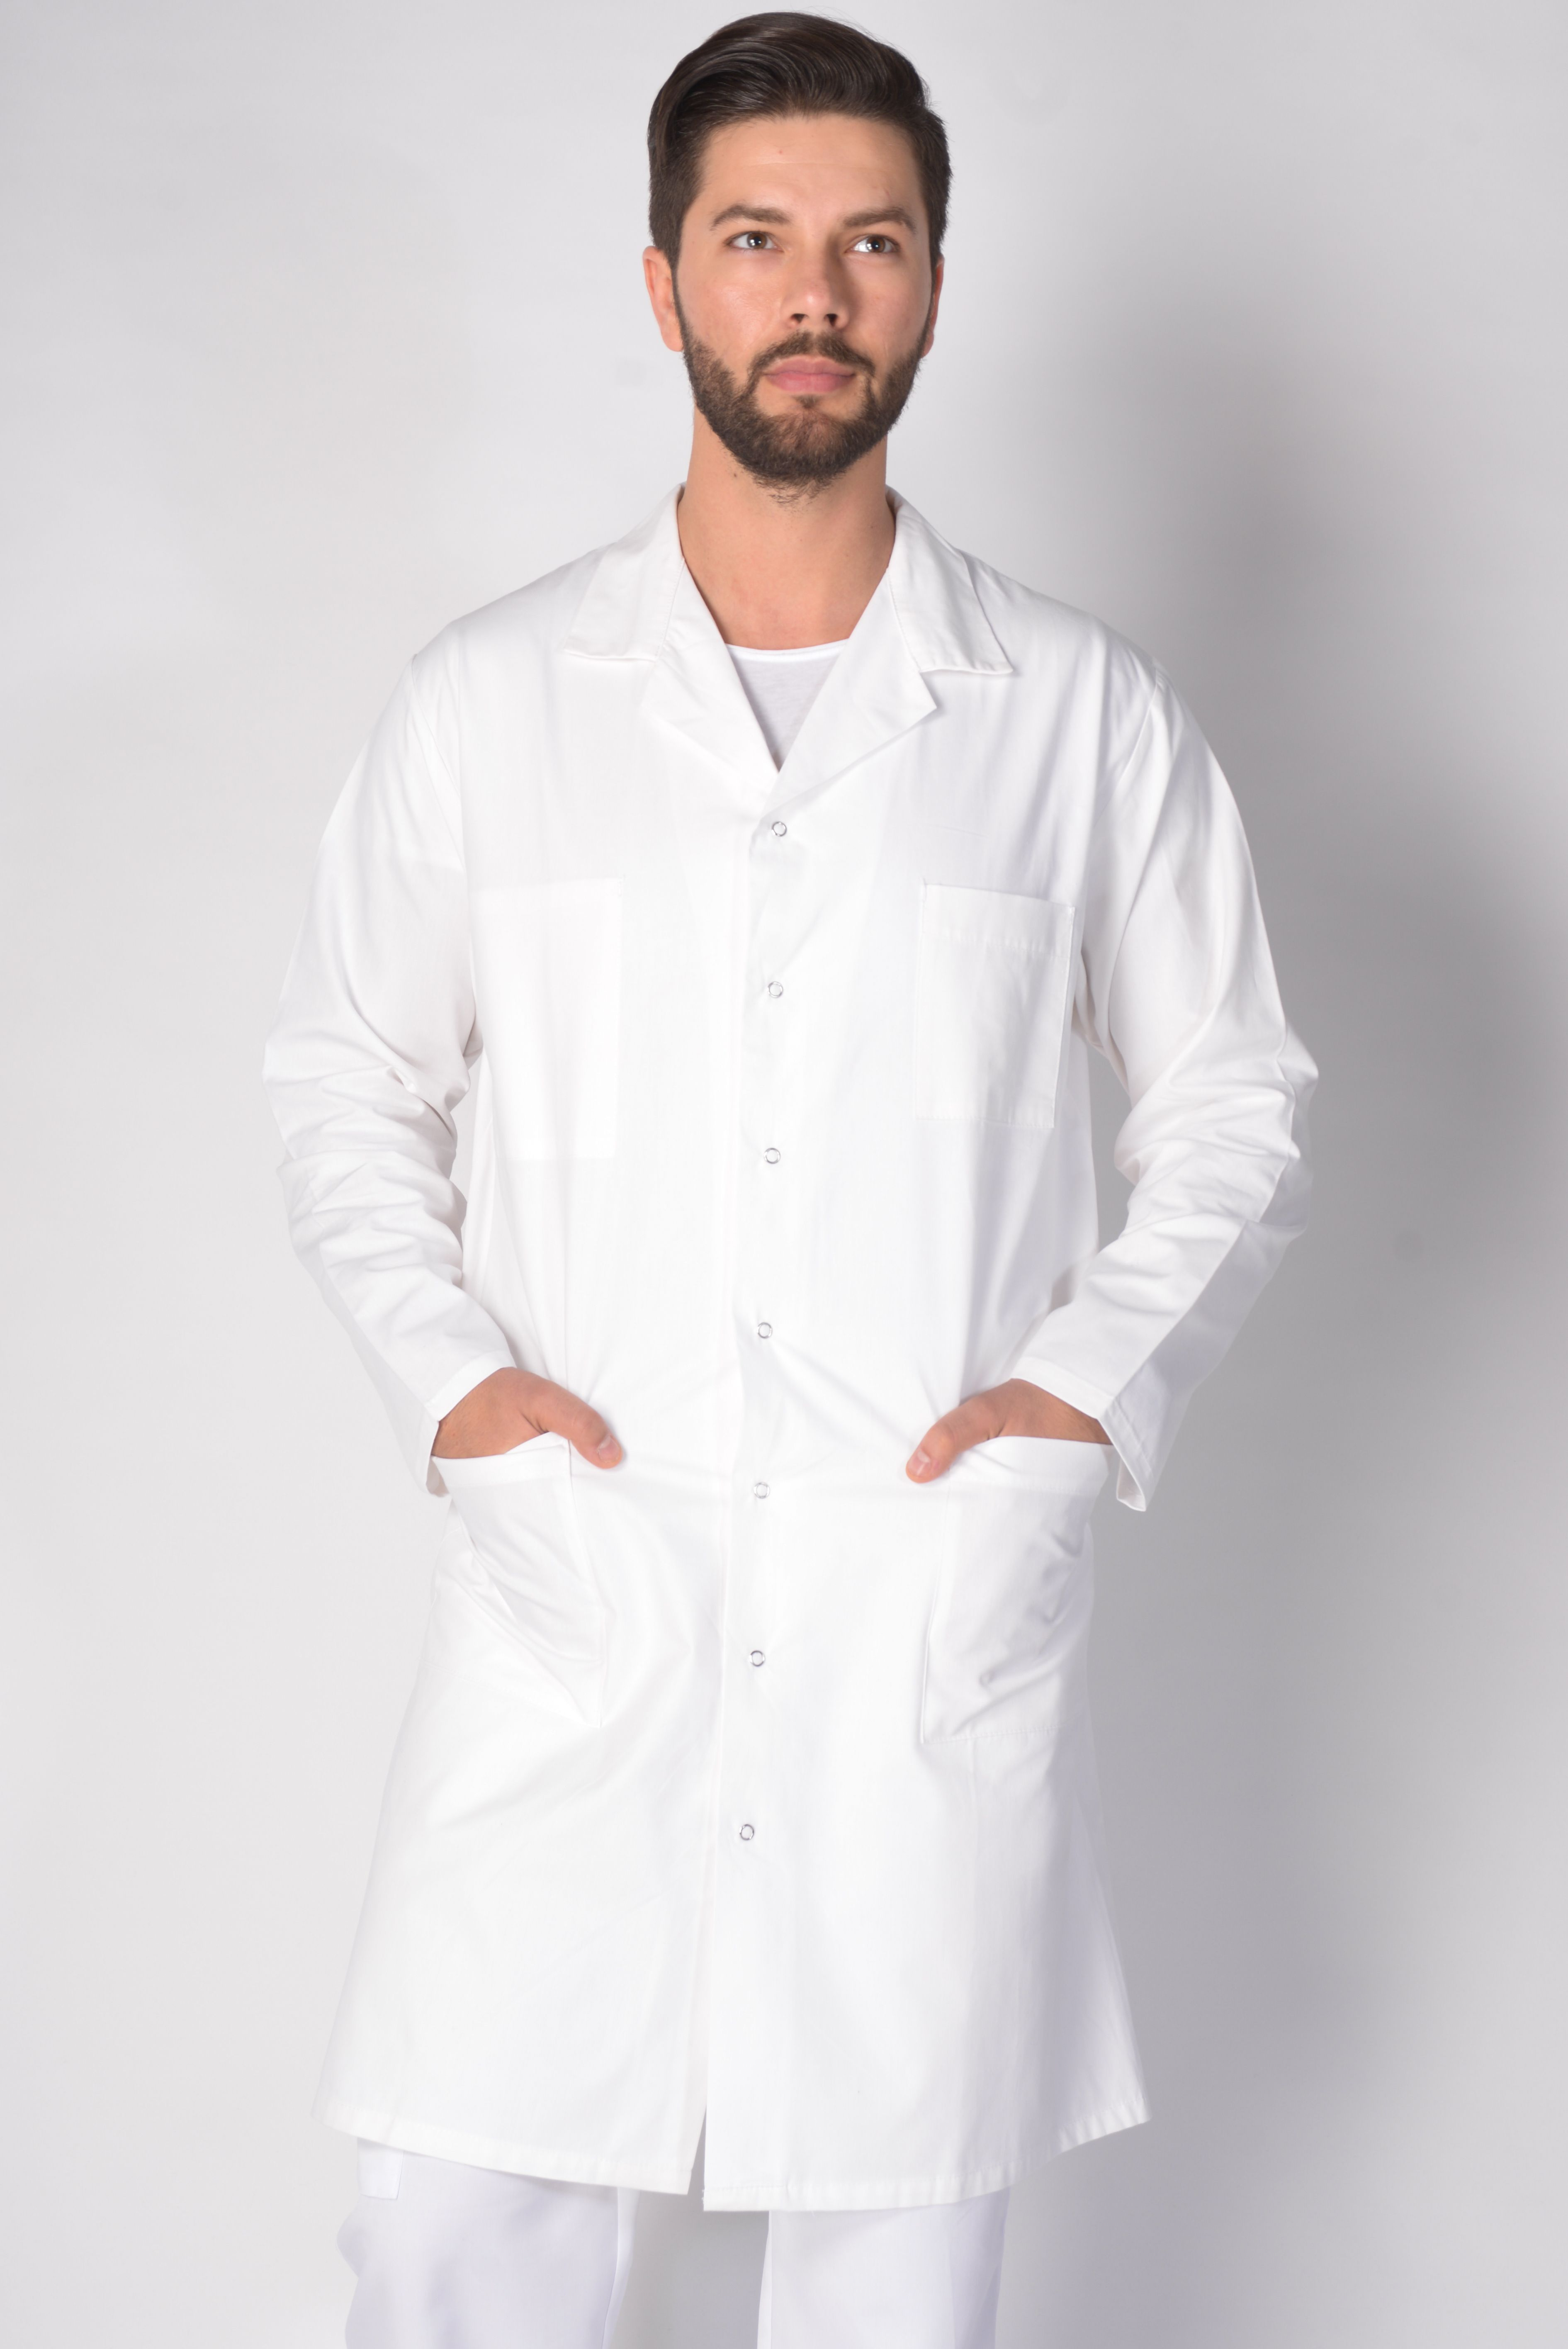 afc1f49405e86 Blouse Blanche Medicale Homme Lafont Axel   order in the court ...